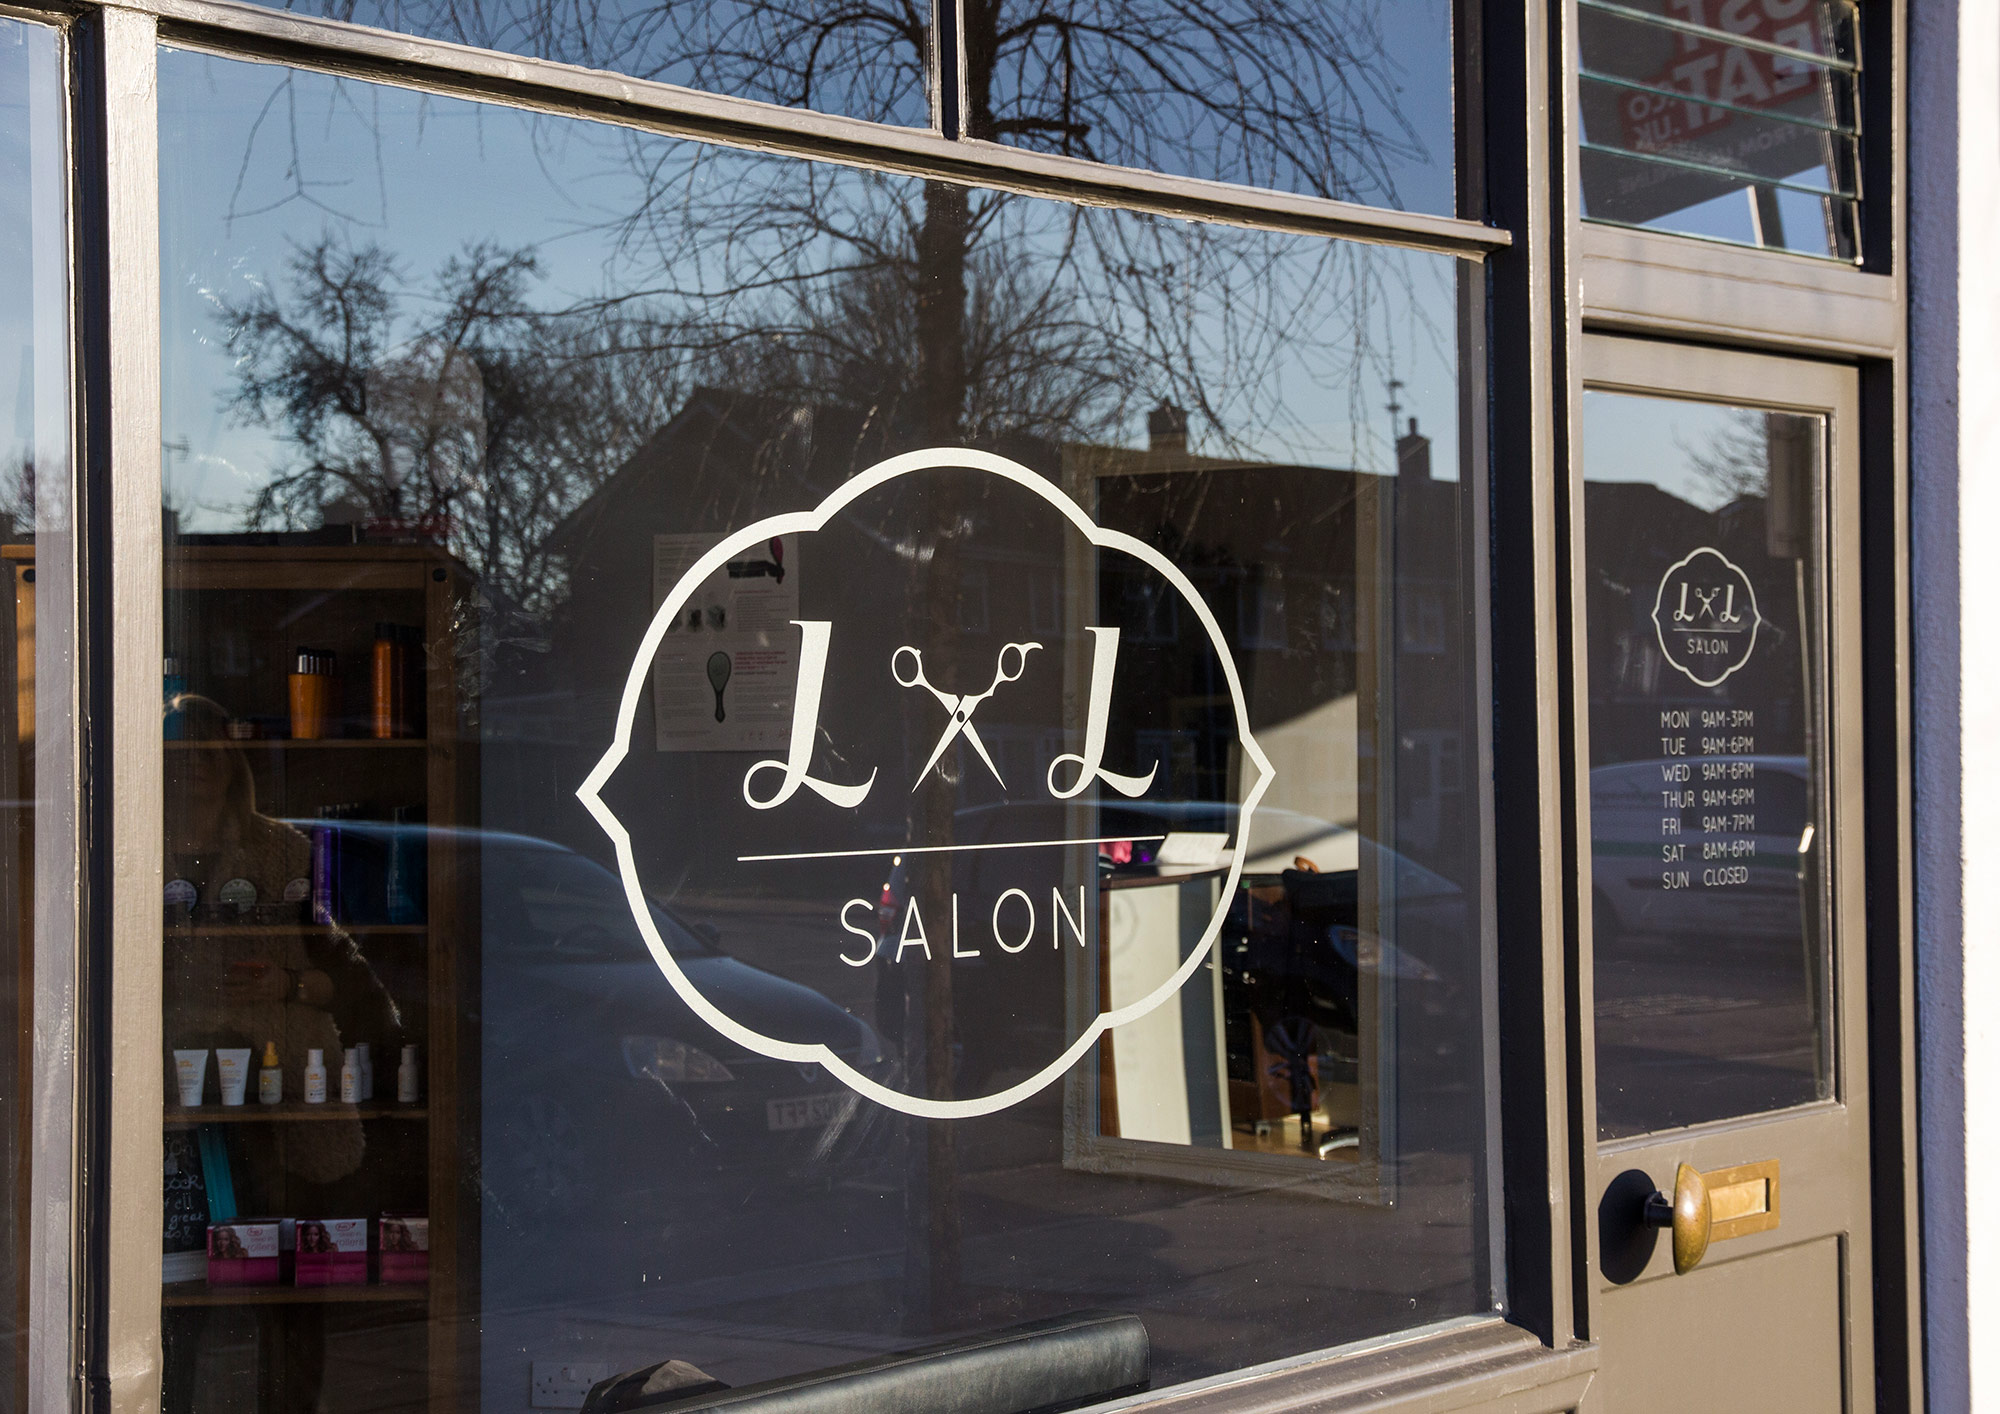 L&L Salon graphics